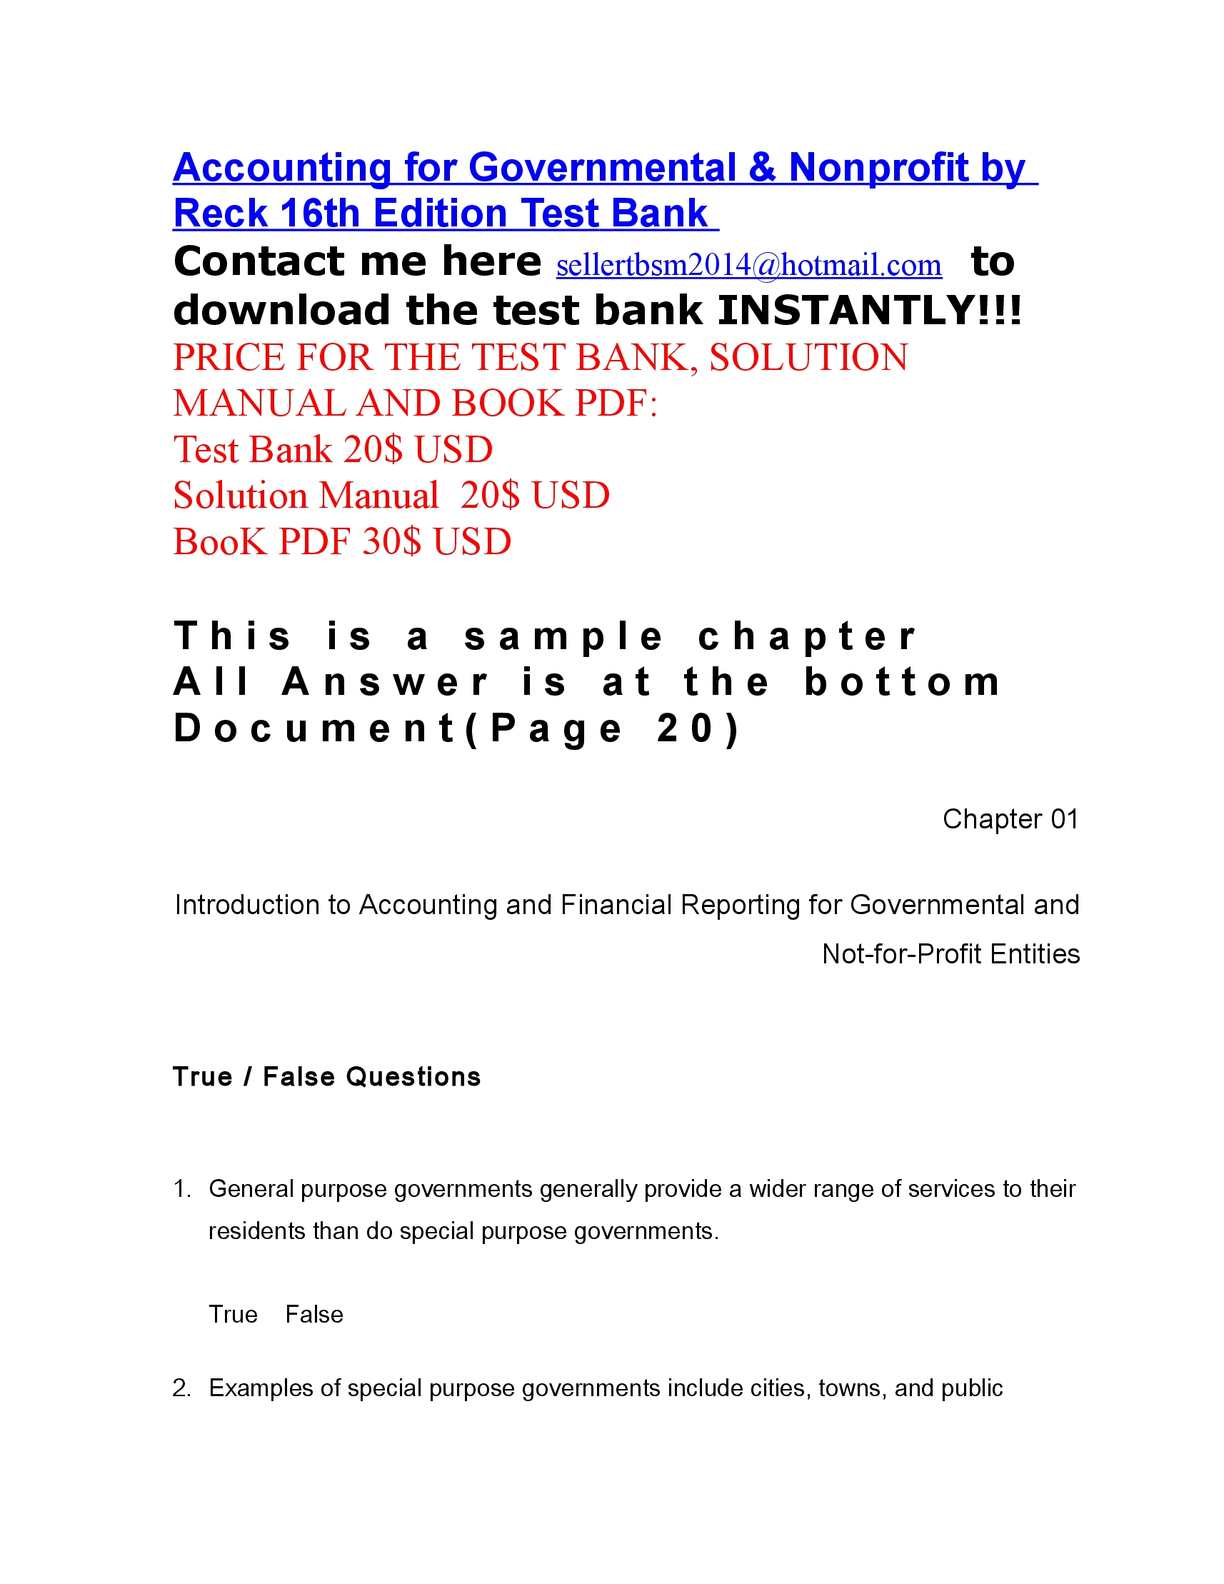 Calamo auditing and assurance service 15e test bank solution calamo auditing and assurance service 15e test bank solution manual and more test bank other books fandeluxe Image collections